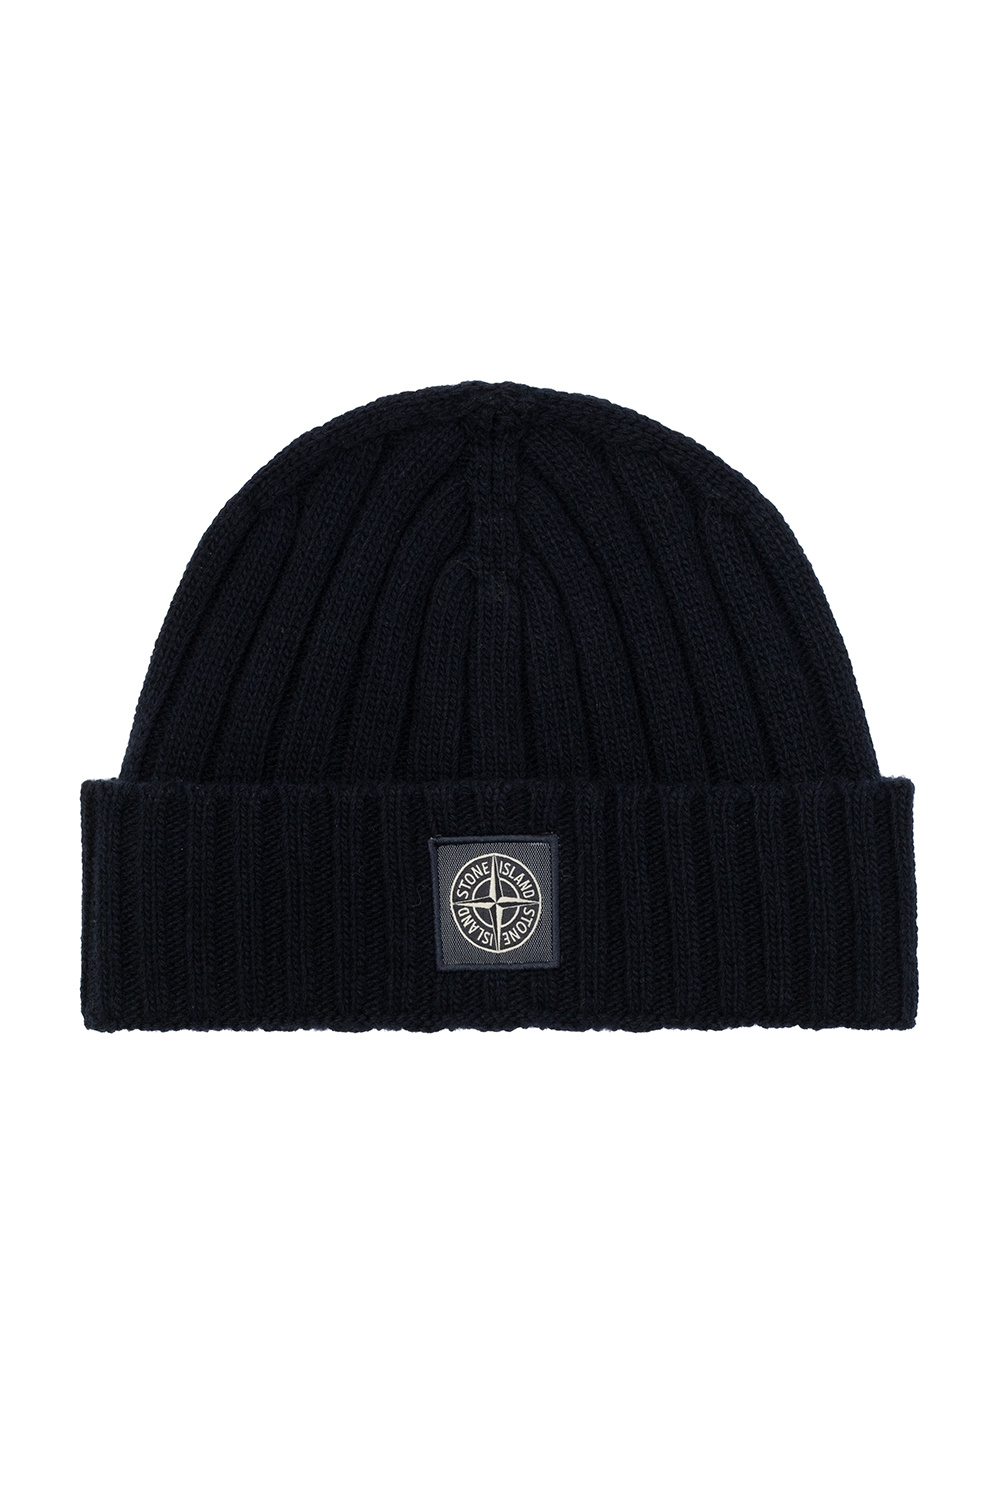 Stone Island Logo-patched hat